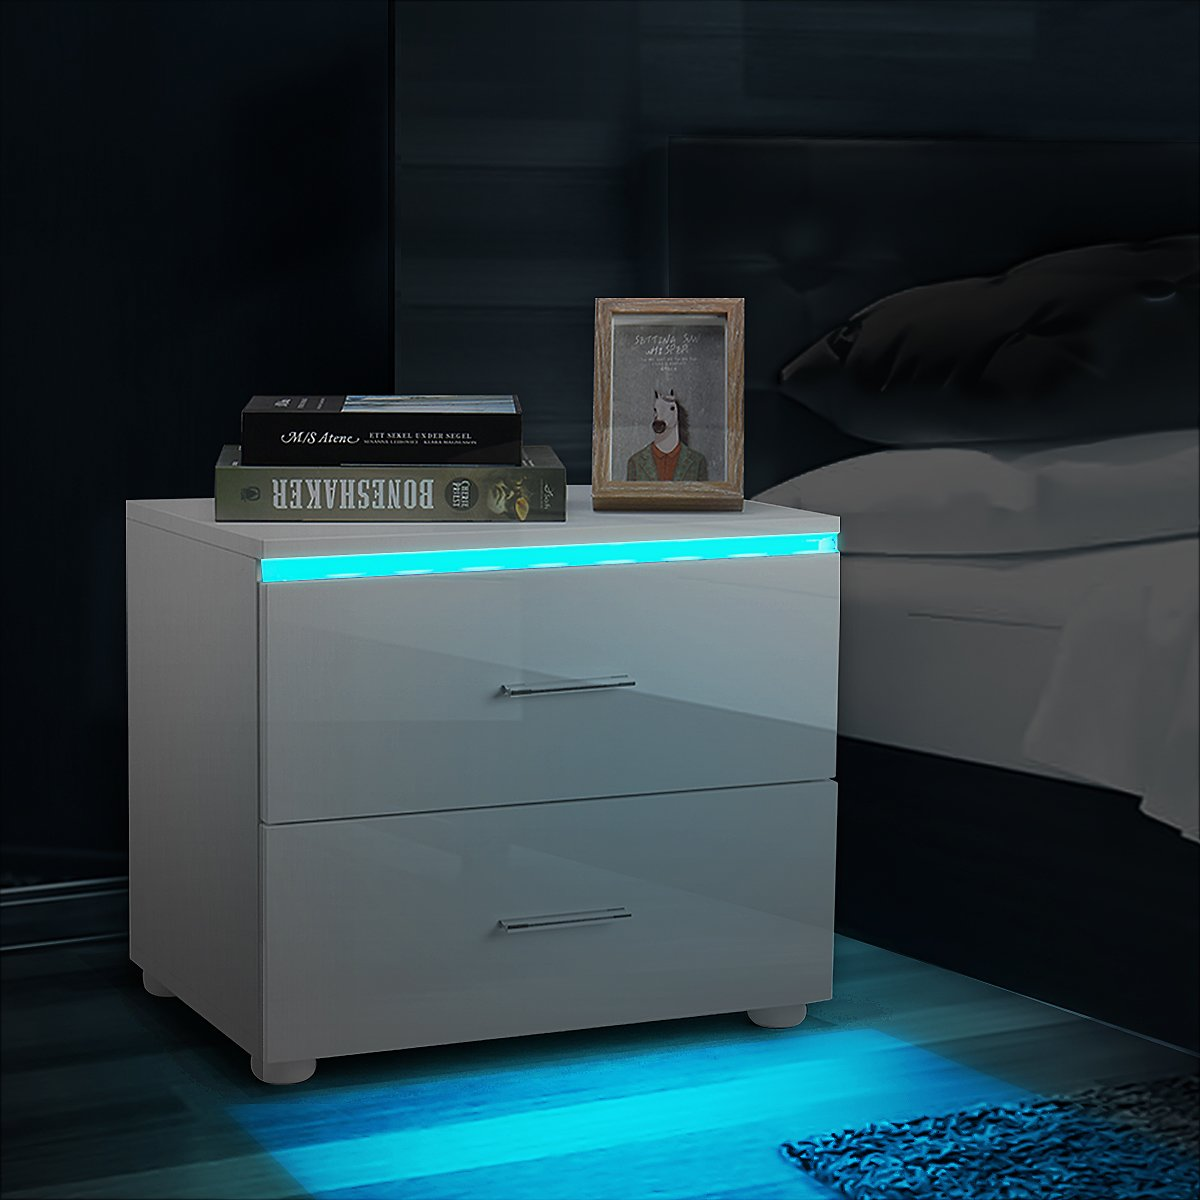 Mordern Nightstand with 2 Drawers, RGB LED Light, High Gloss Wooden Finish, Bedroom Home Decor (18.89x13.77x15.35 Inches)